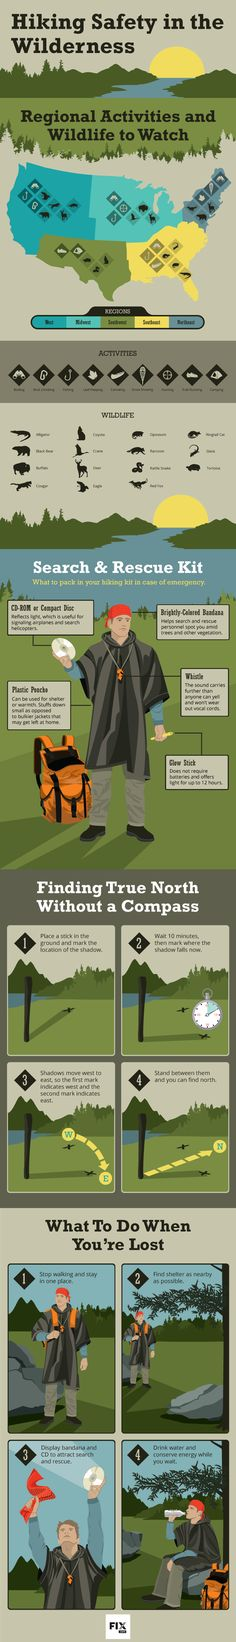 Hiking Safety: How to keep kids safe in the outdoors - Pitstops for Kids